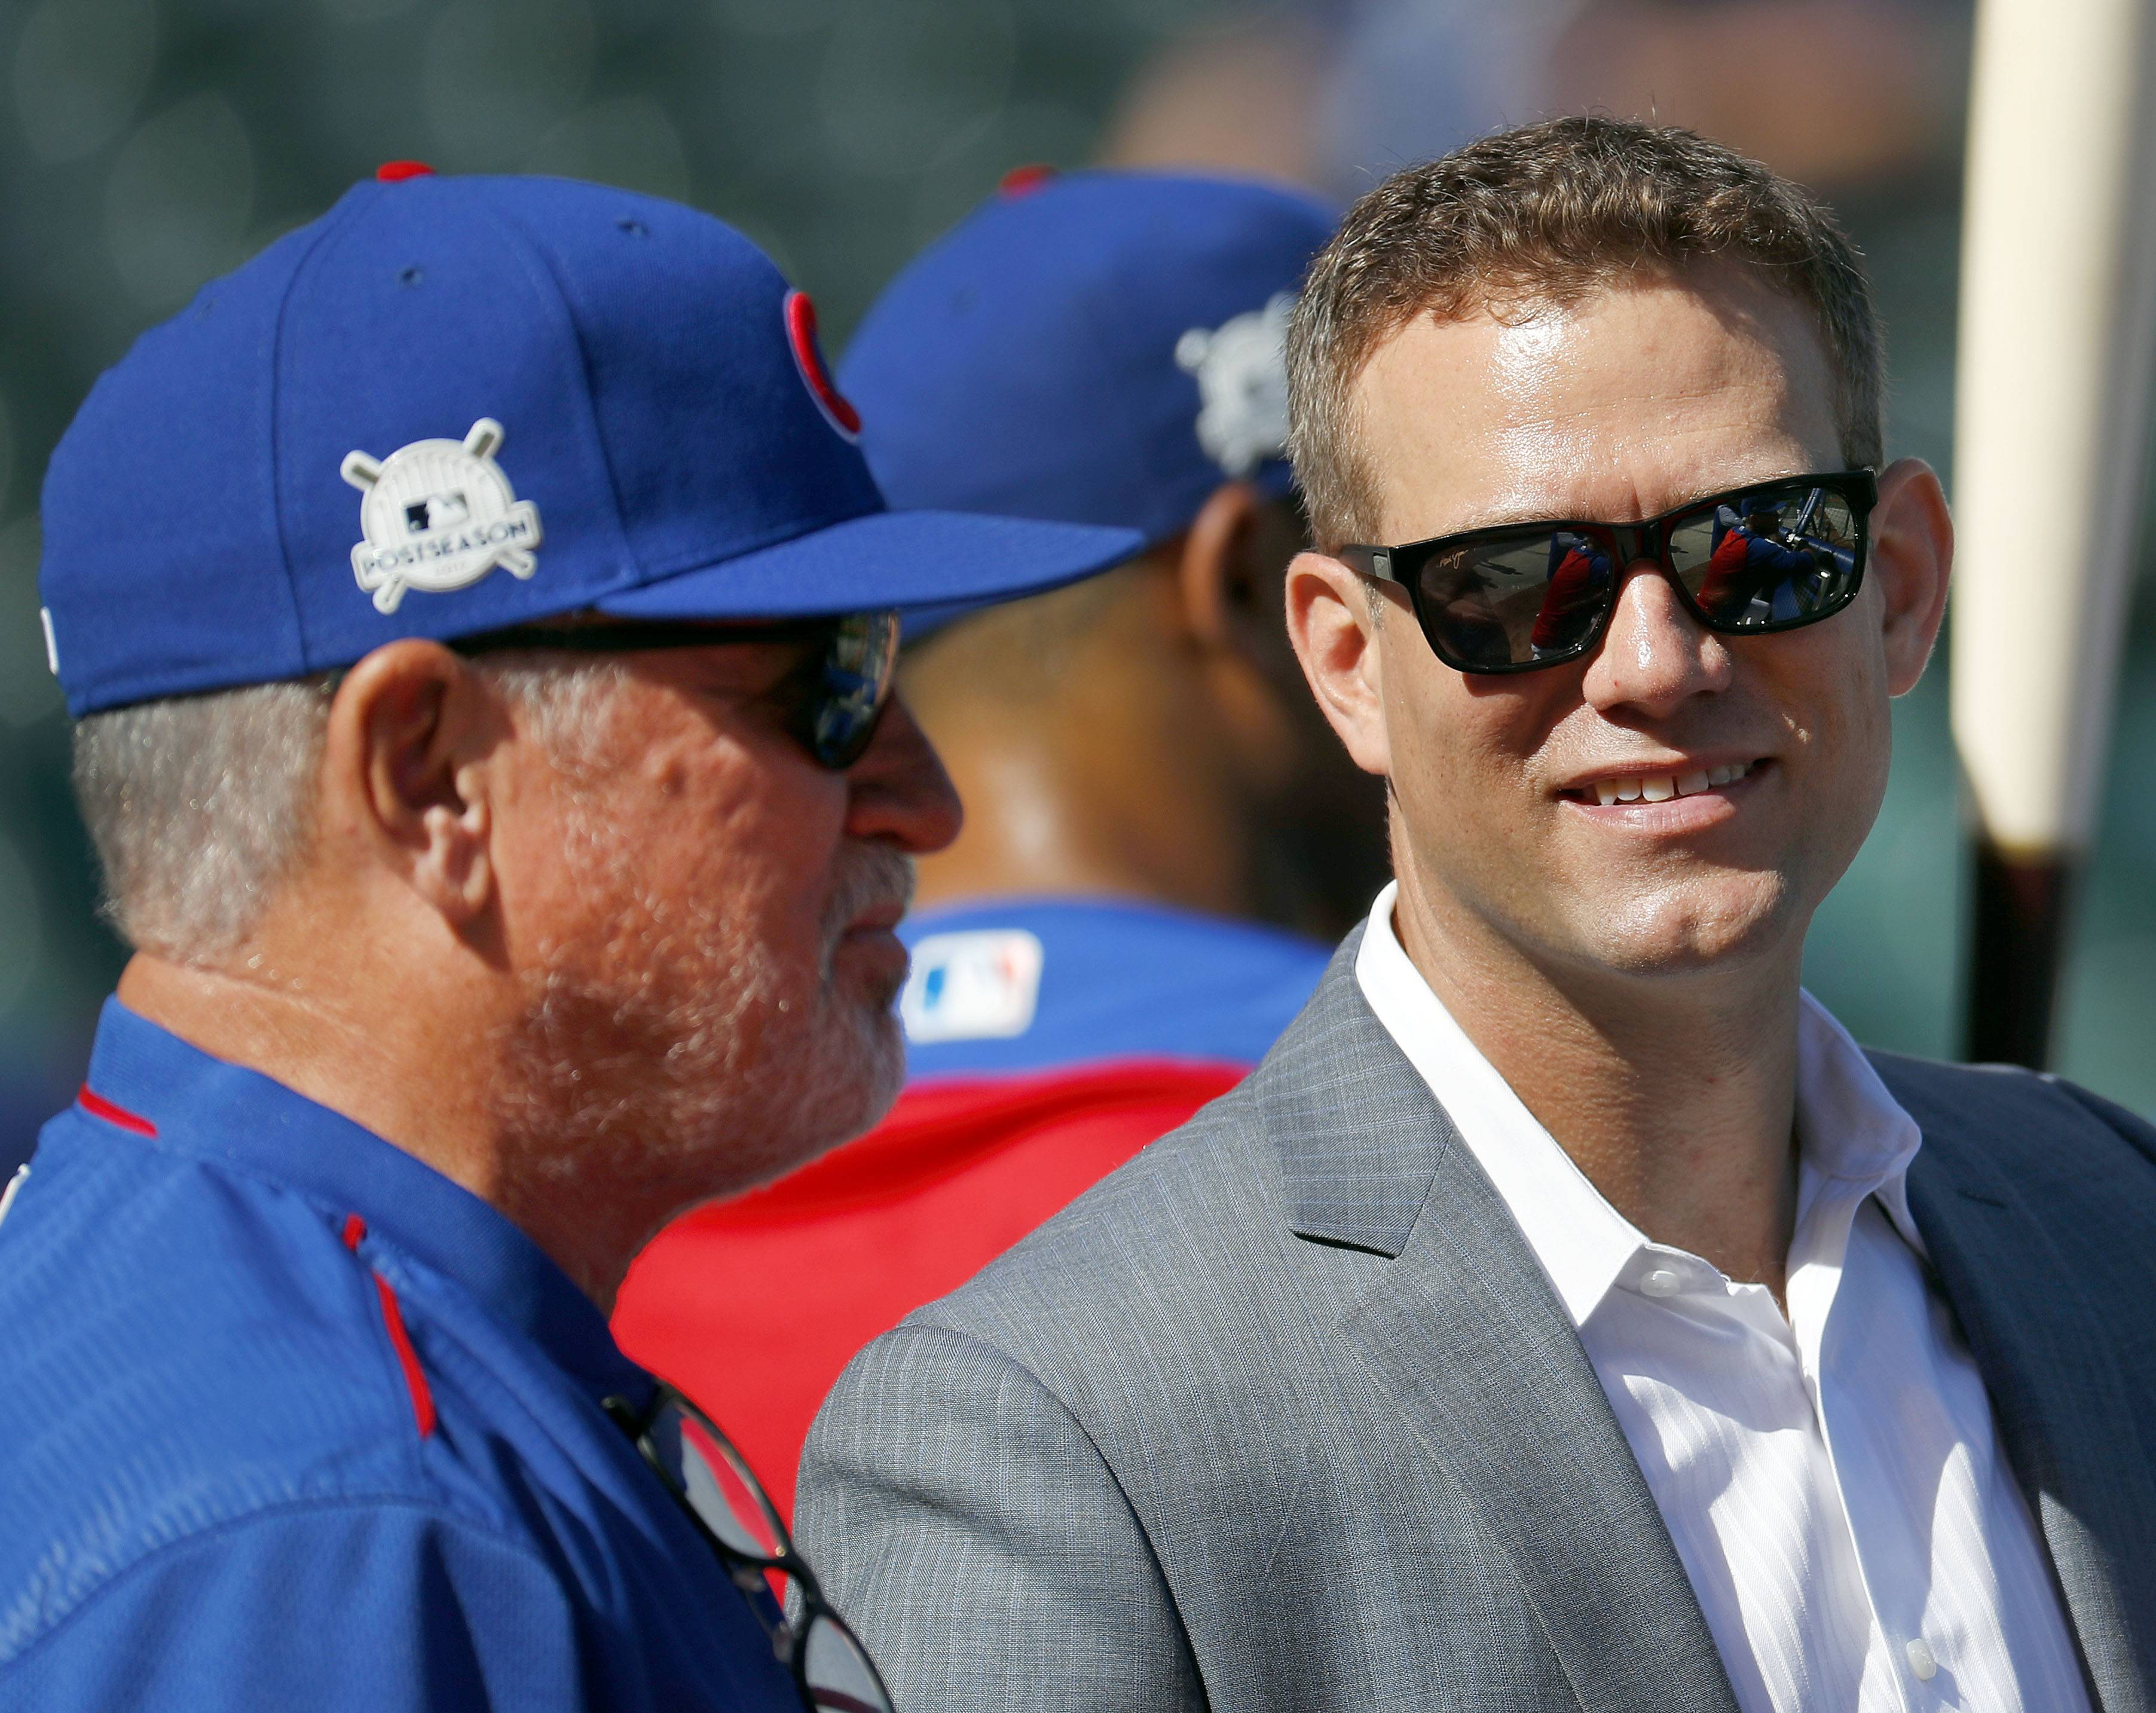 Theo Epstein has a few words with manager Joe Maddon prior to Game 3 of the National League Division Series in October 2017 at Wrigley Field.